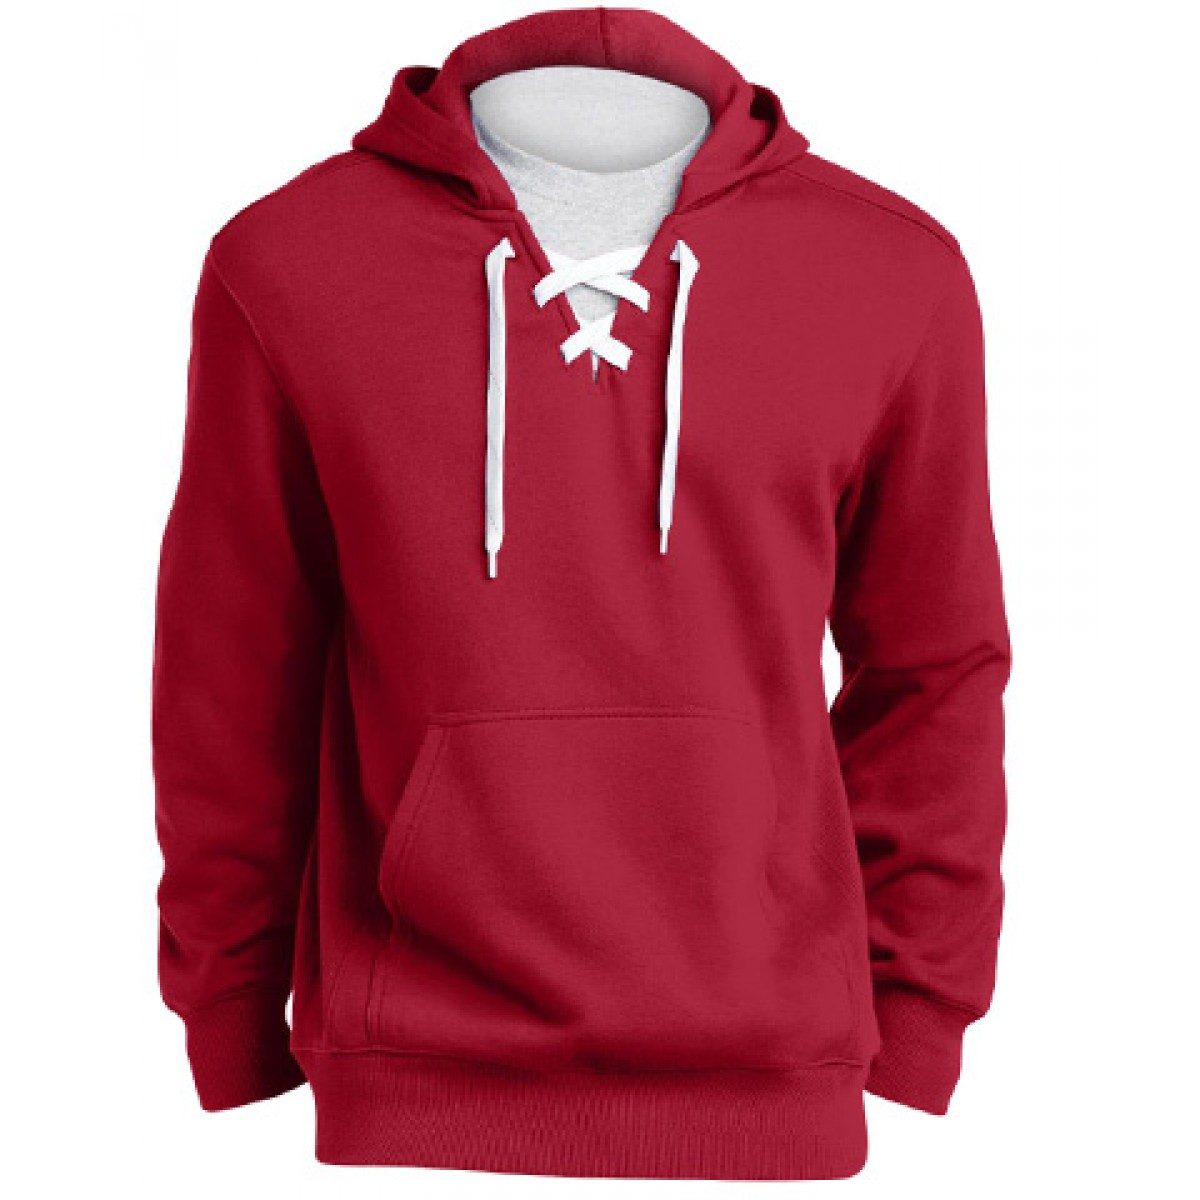 Lace Up Pullover Hooded Sweatshirt-Red-L